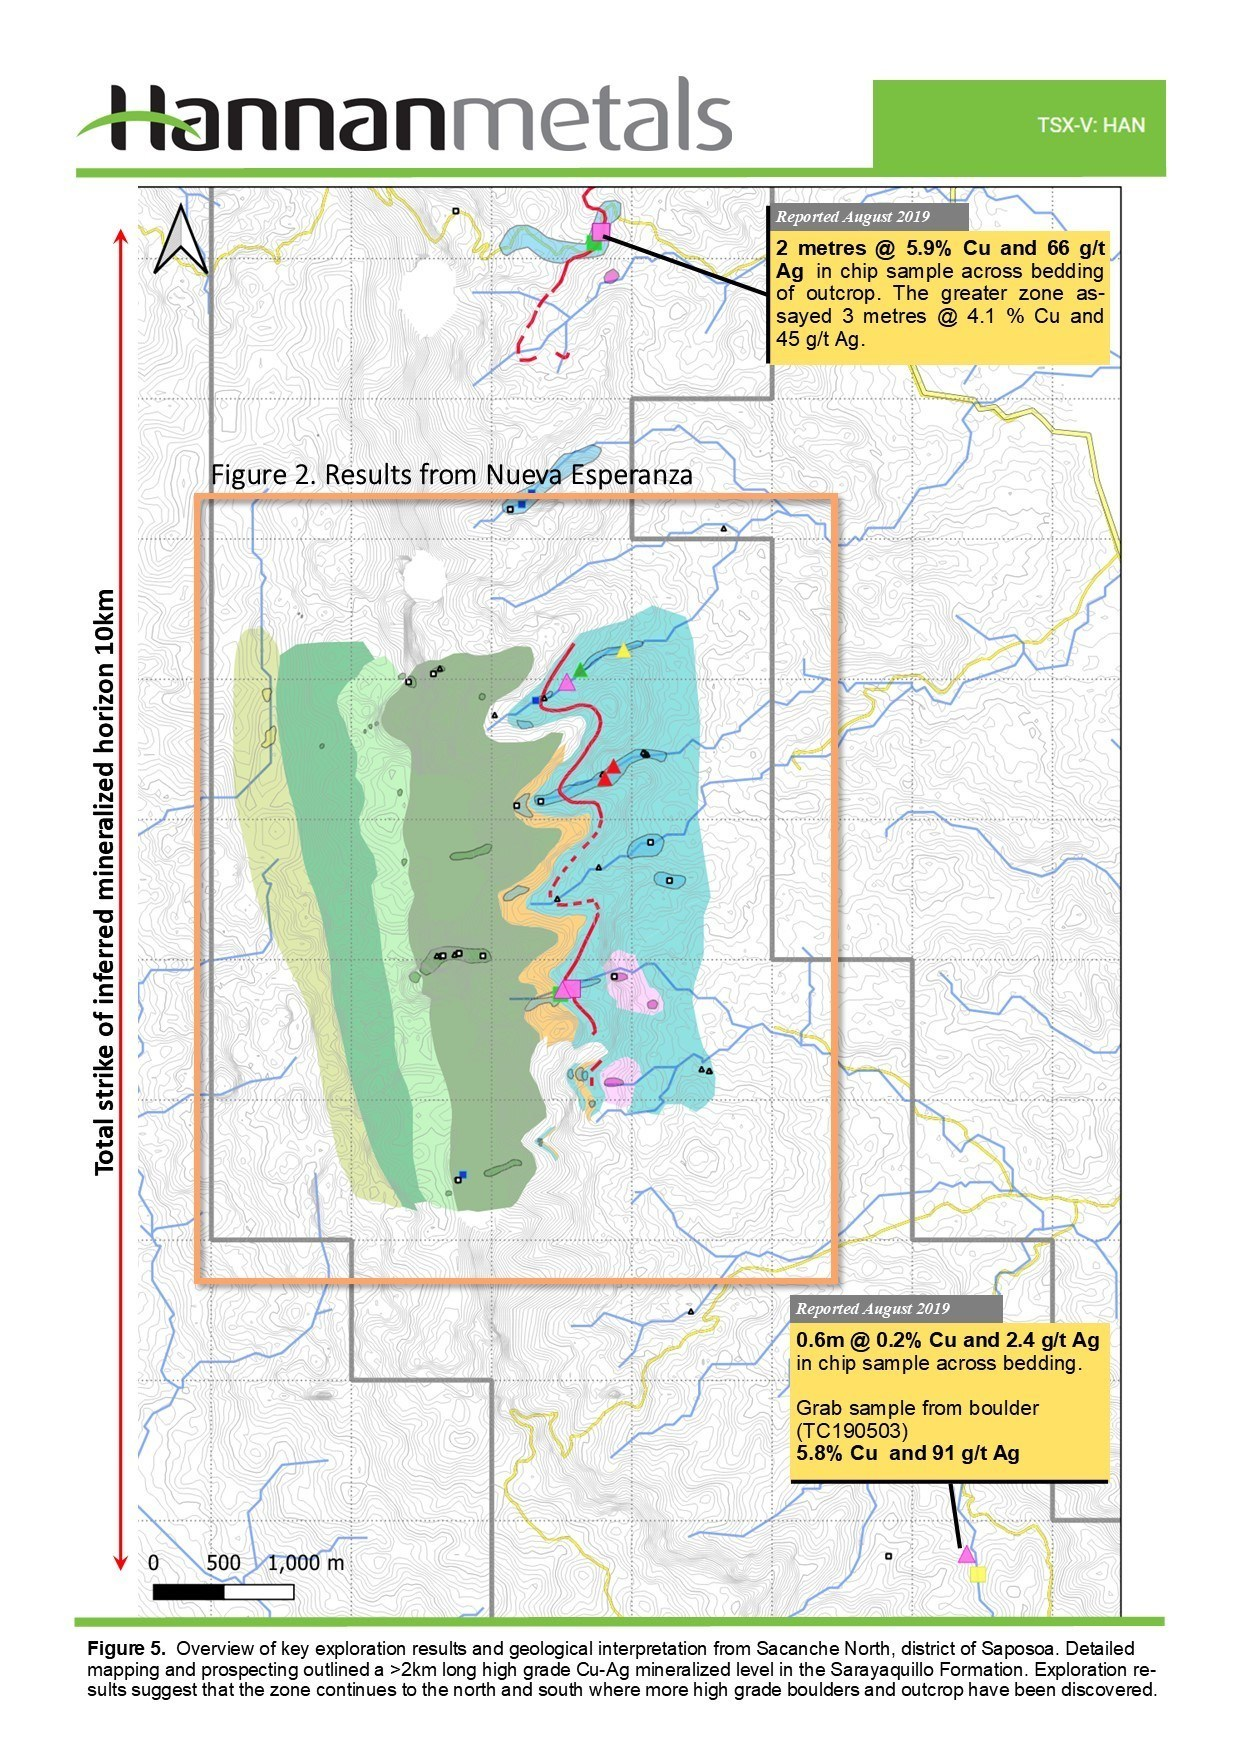 Figure 5: Overview of key exploration results and geographical interpretation from Sacanche North, district of Saposoa. (CNW Group/Hannan Metals Ltd.)